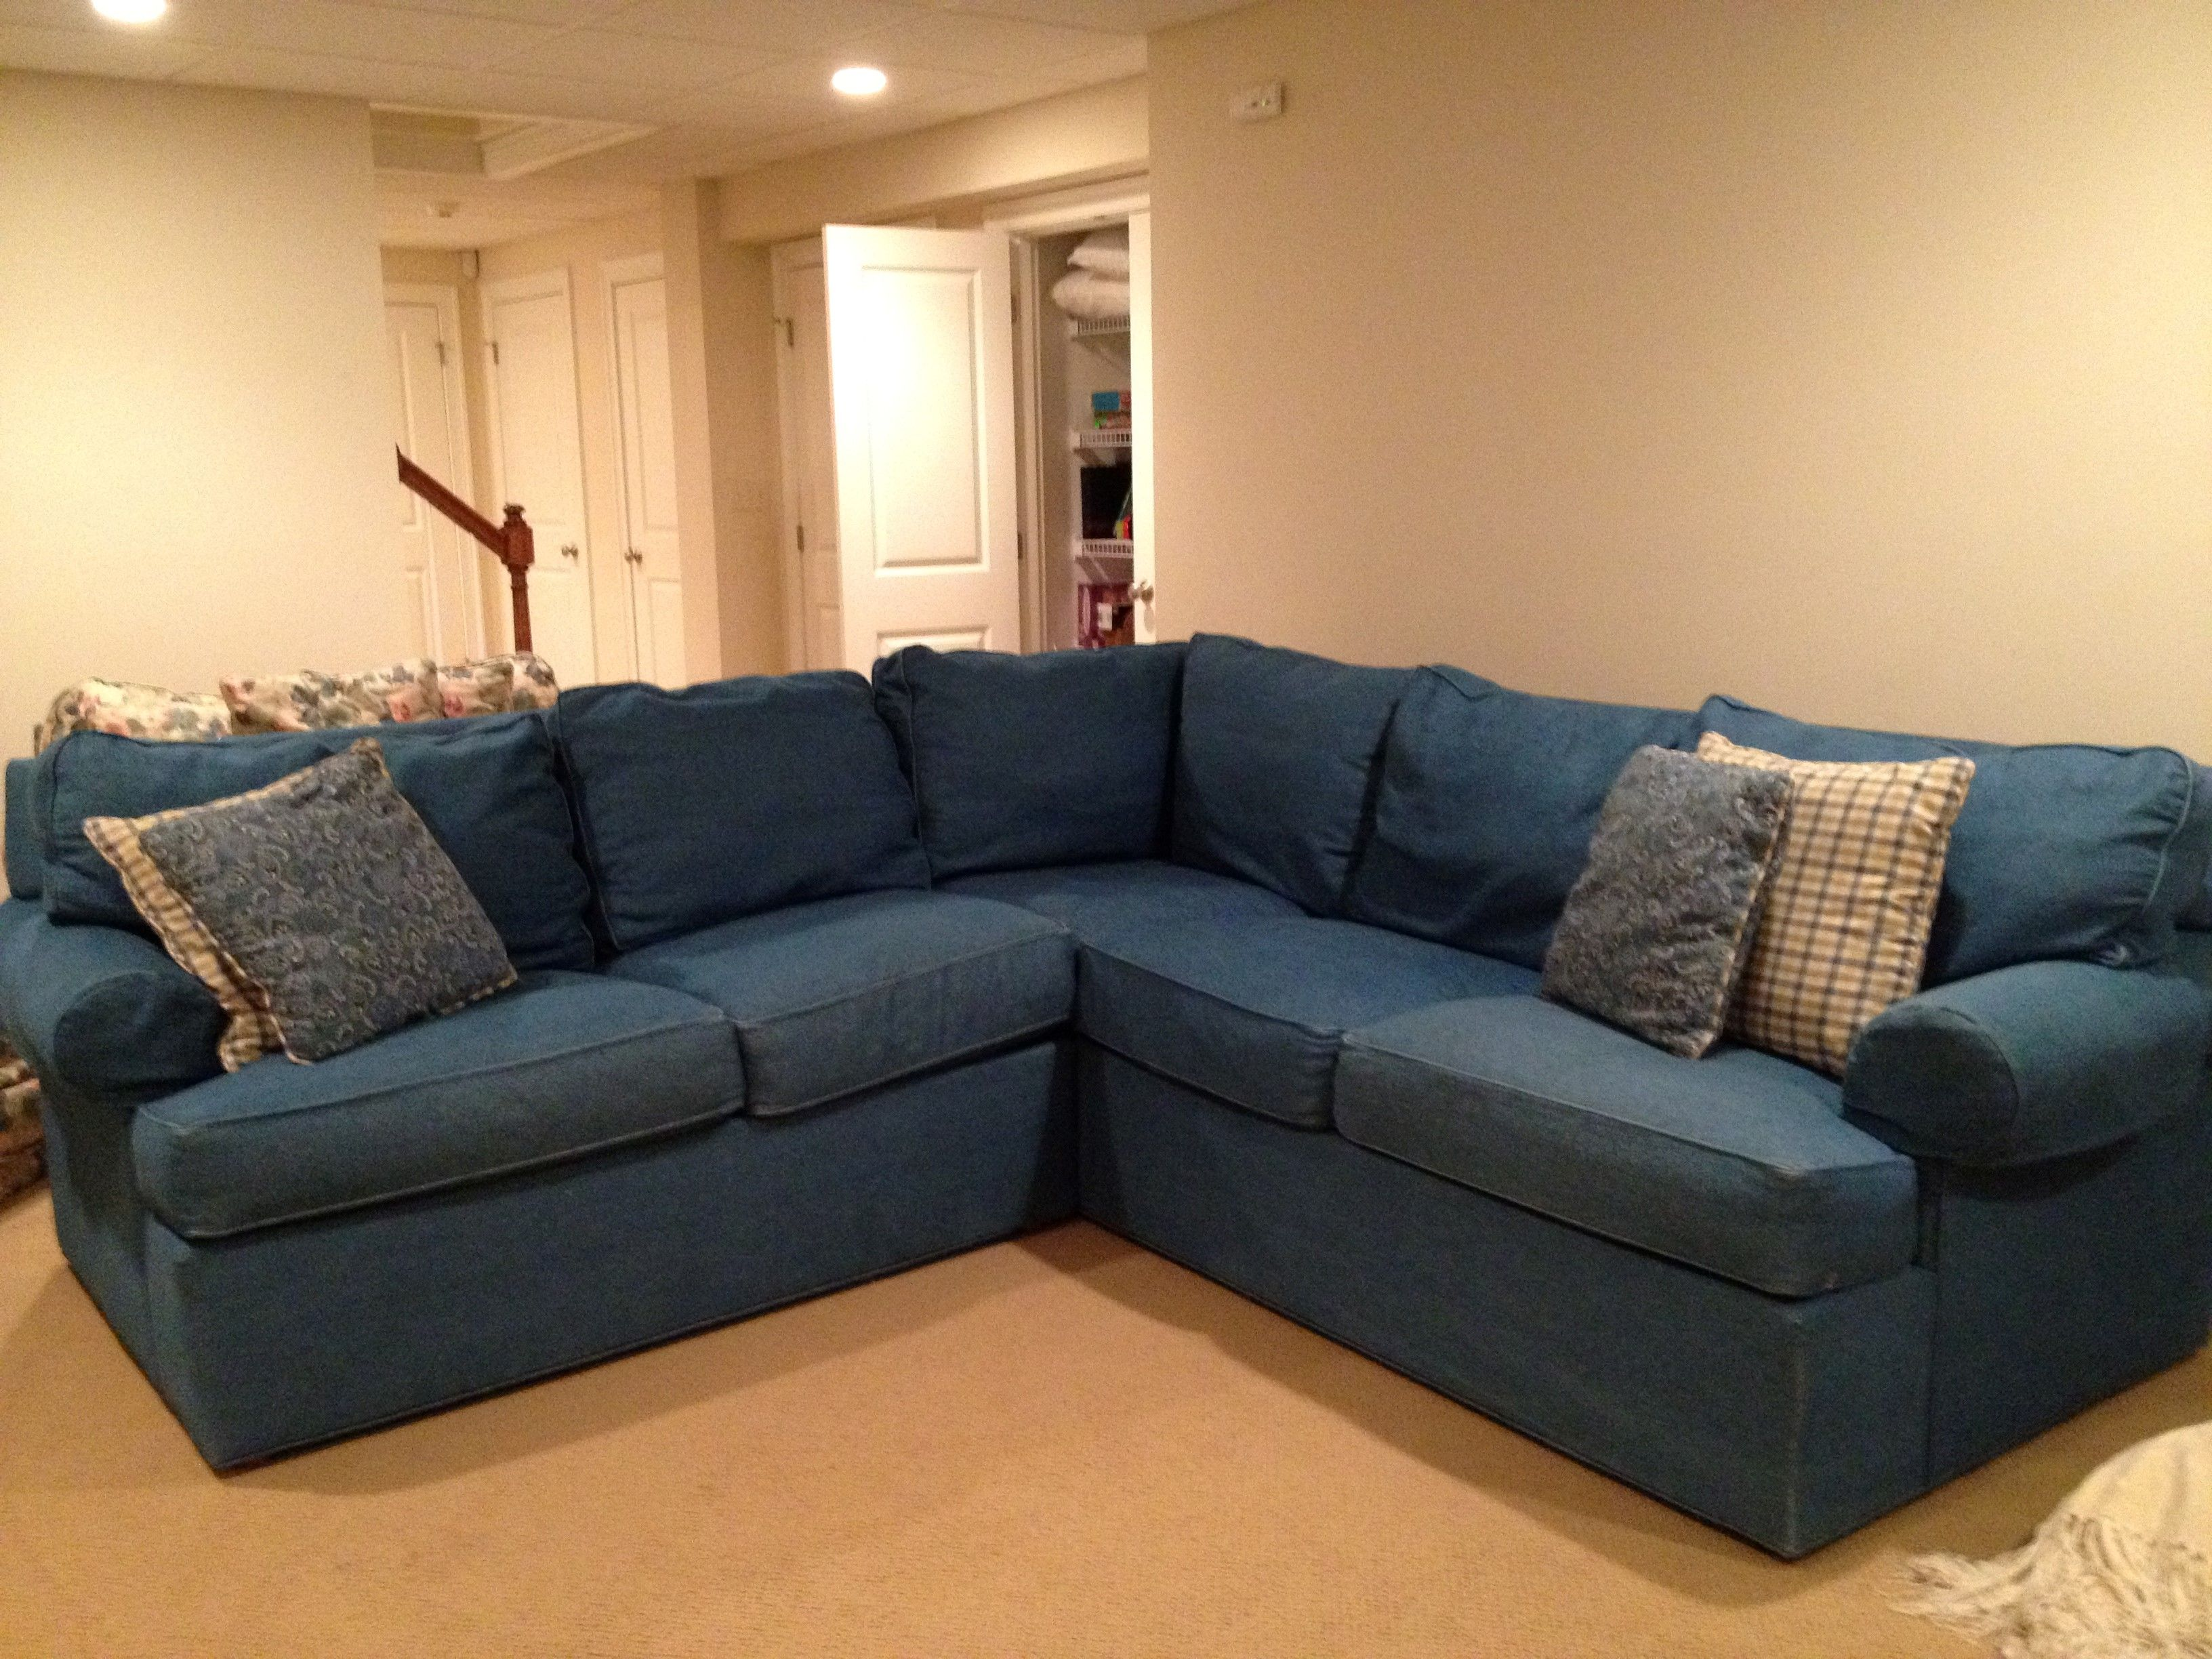 Ikea Sectionals | Denim Sectional Sofa | 3 Piece Sectional ...